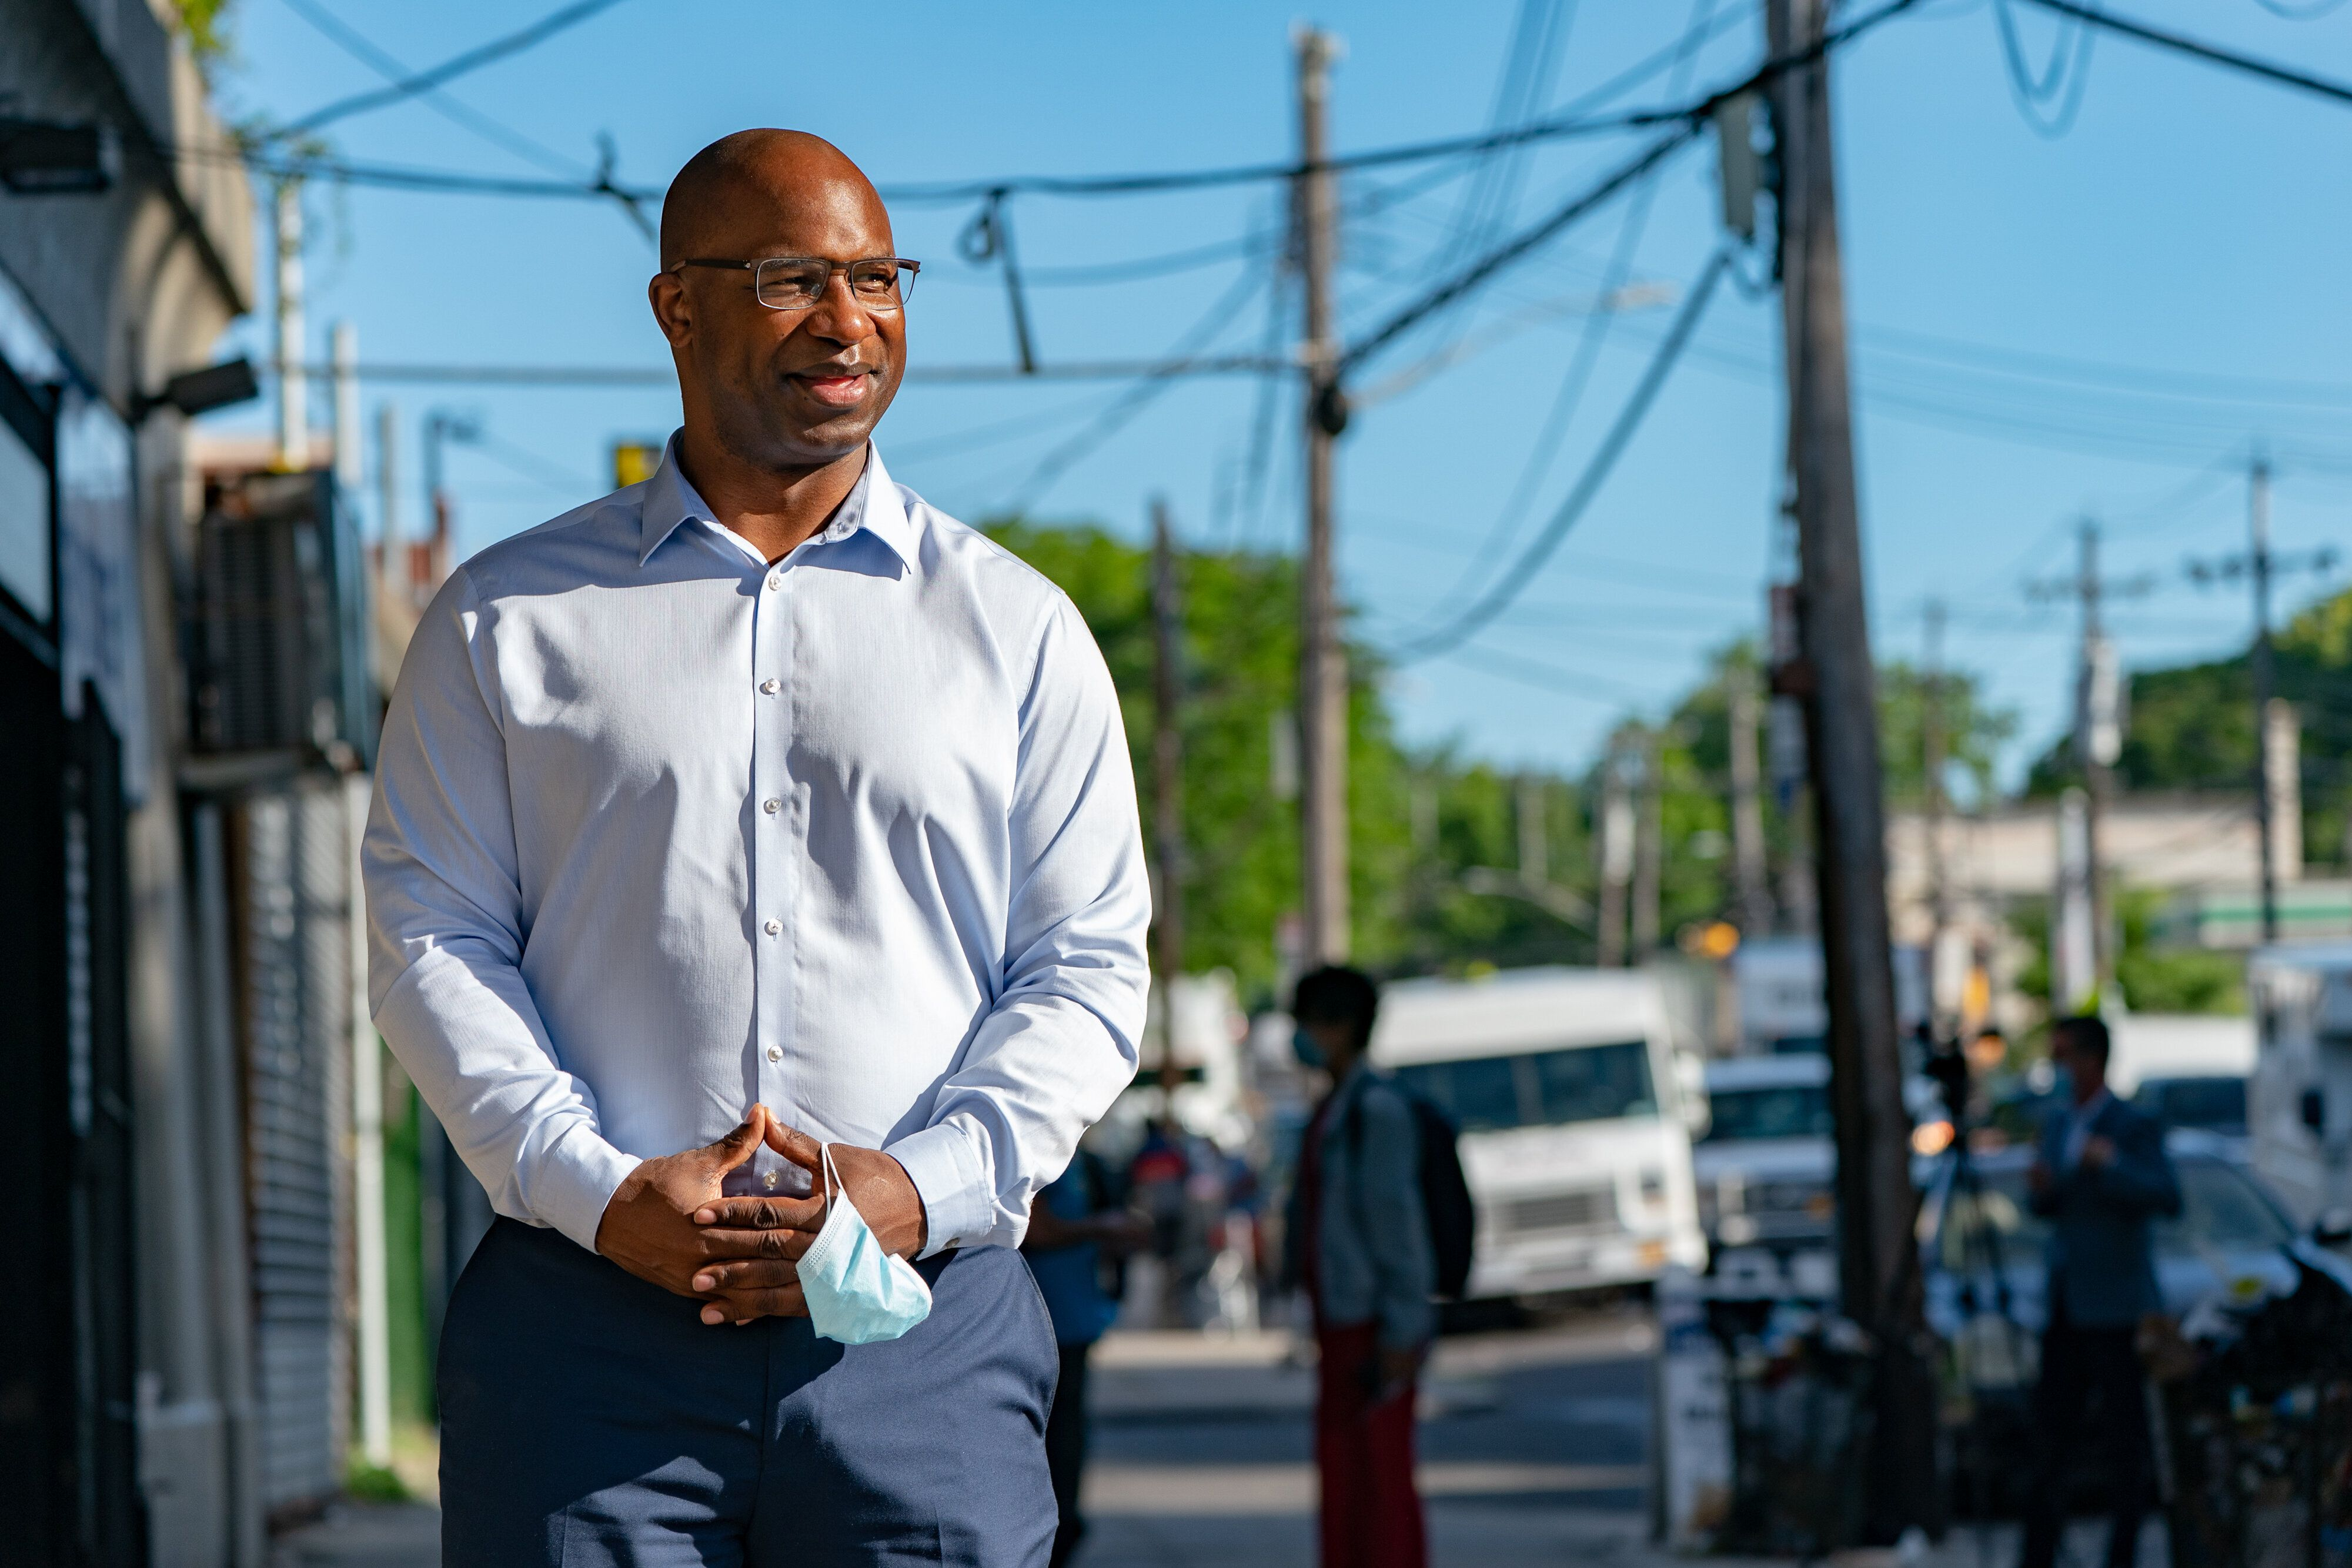 Jamaal Bowman greets voters outside a Bronx subway stop on Wednesday, June 17. He has cast himself as a better representative